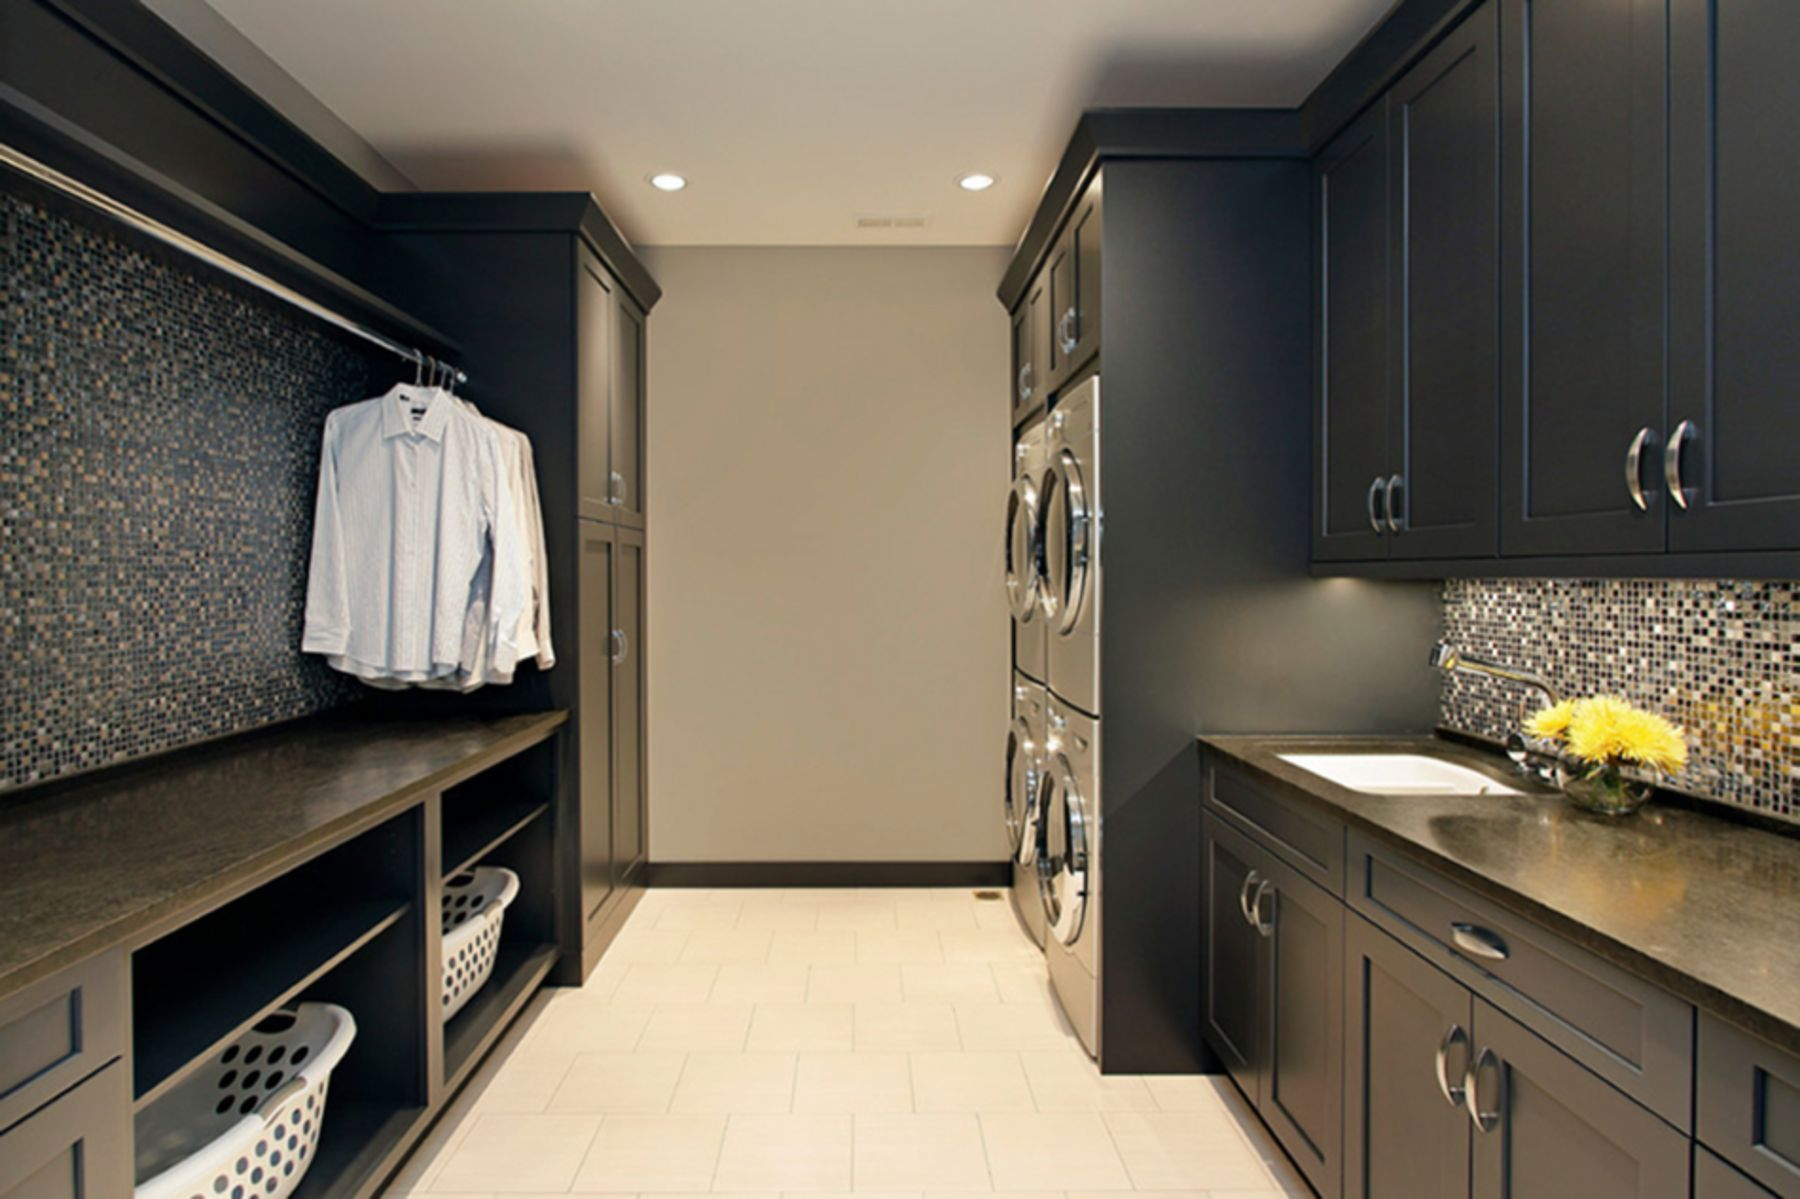 82 Remarkable Laundry Room Layout Ideas for The Perfect Home Drop Zones - homelovers  laundry room  #Drop #Home #homelovers #Ideas #Laundry #Layout #Perfect #Remarkable #Room #Zones